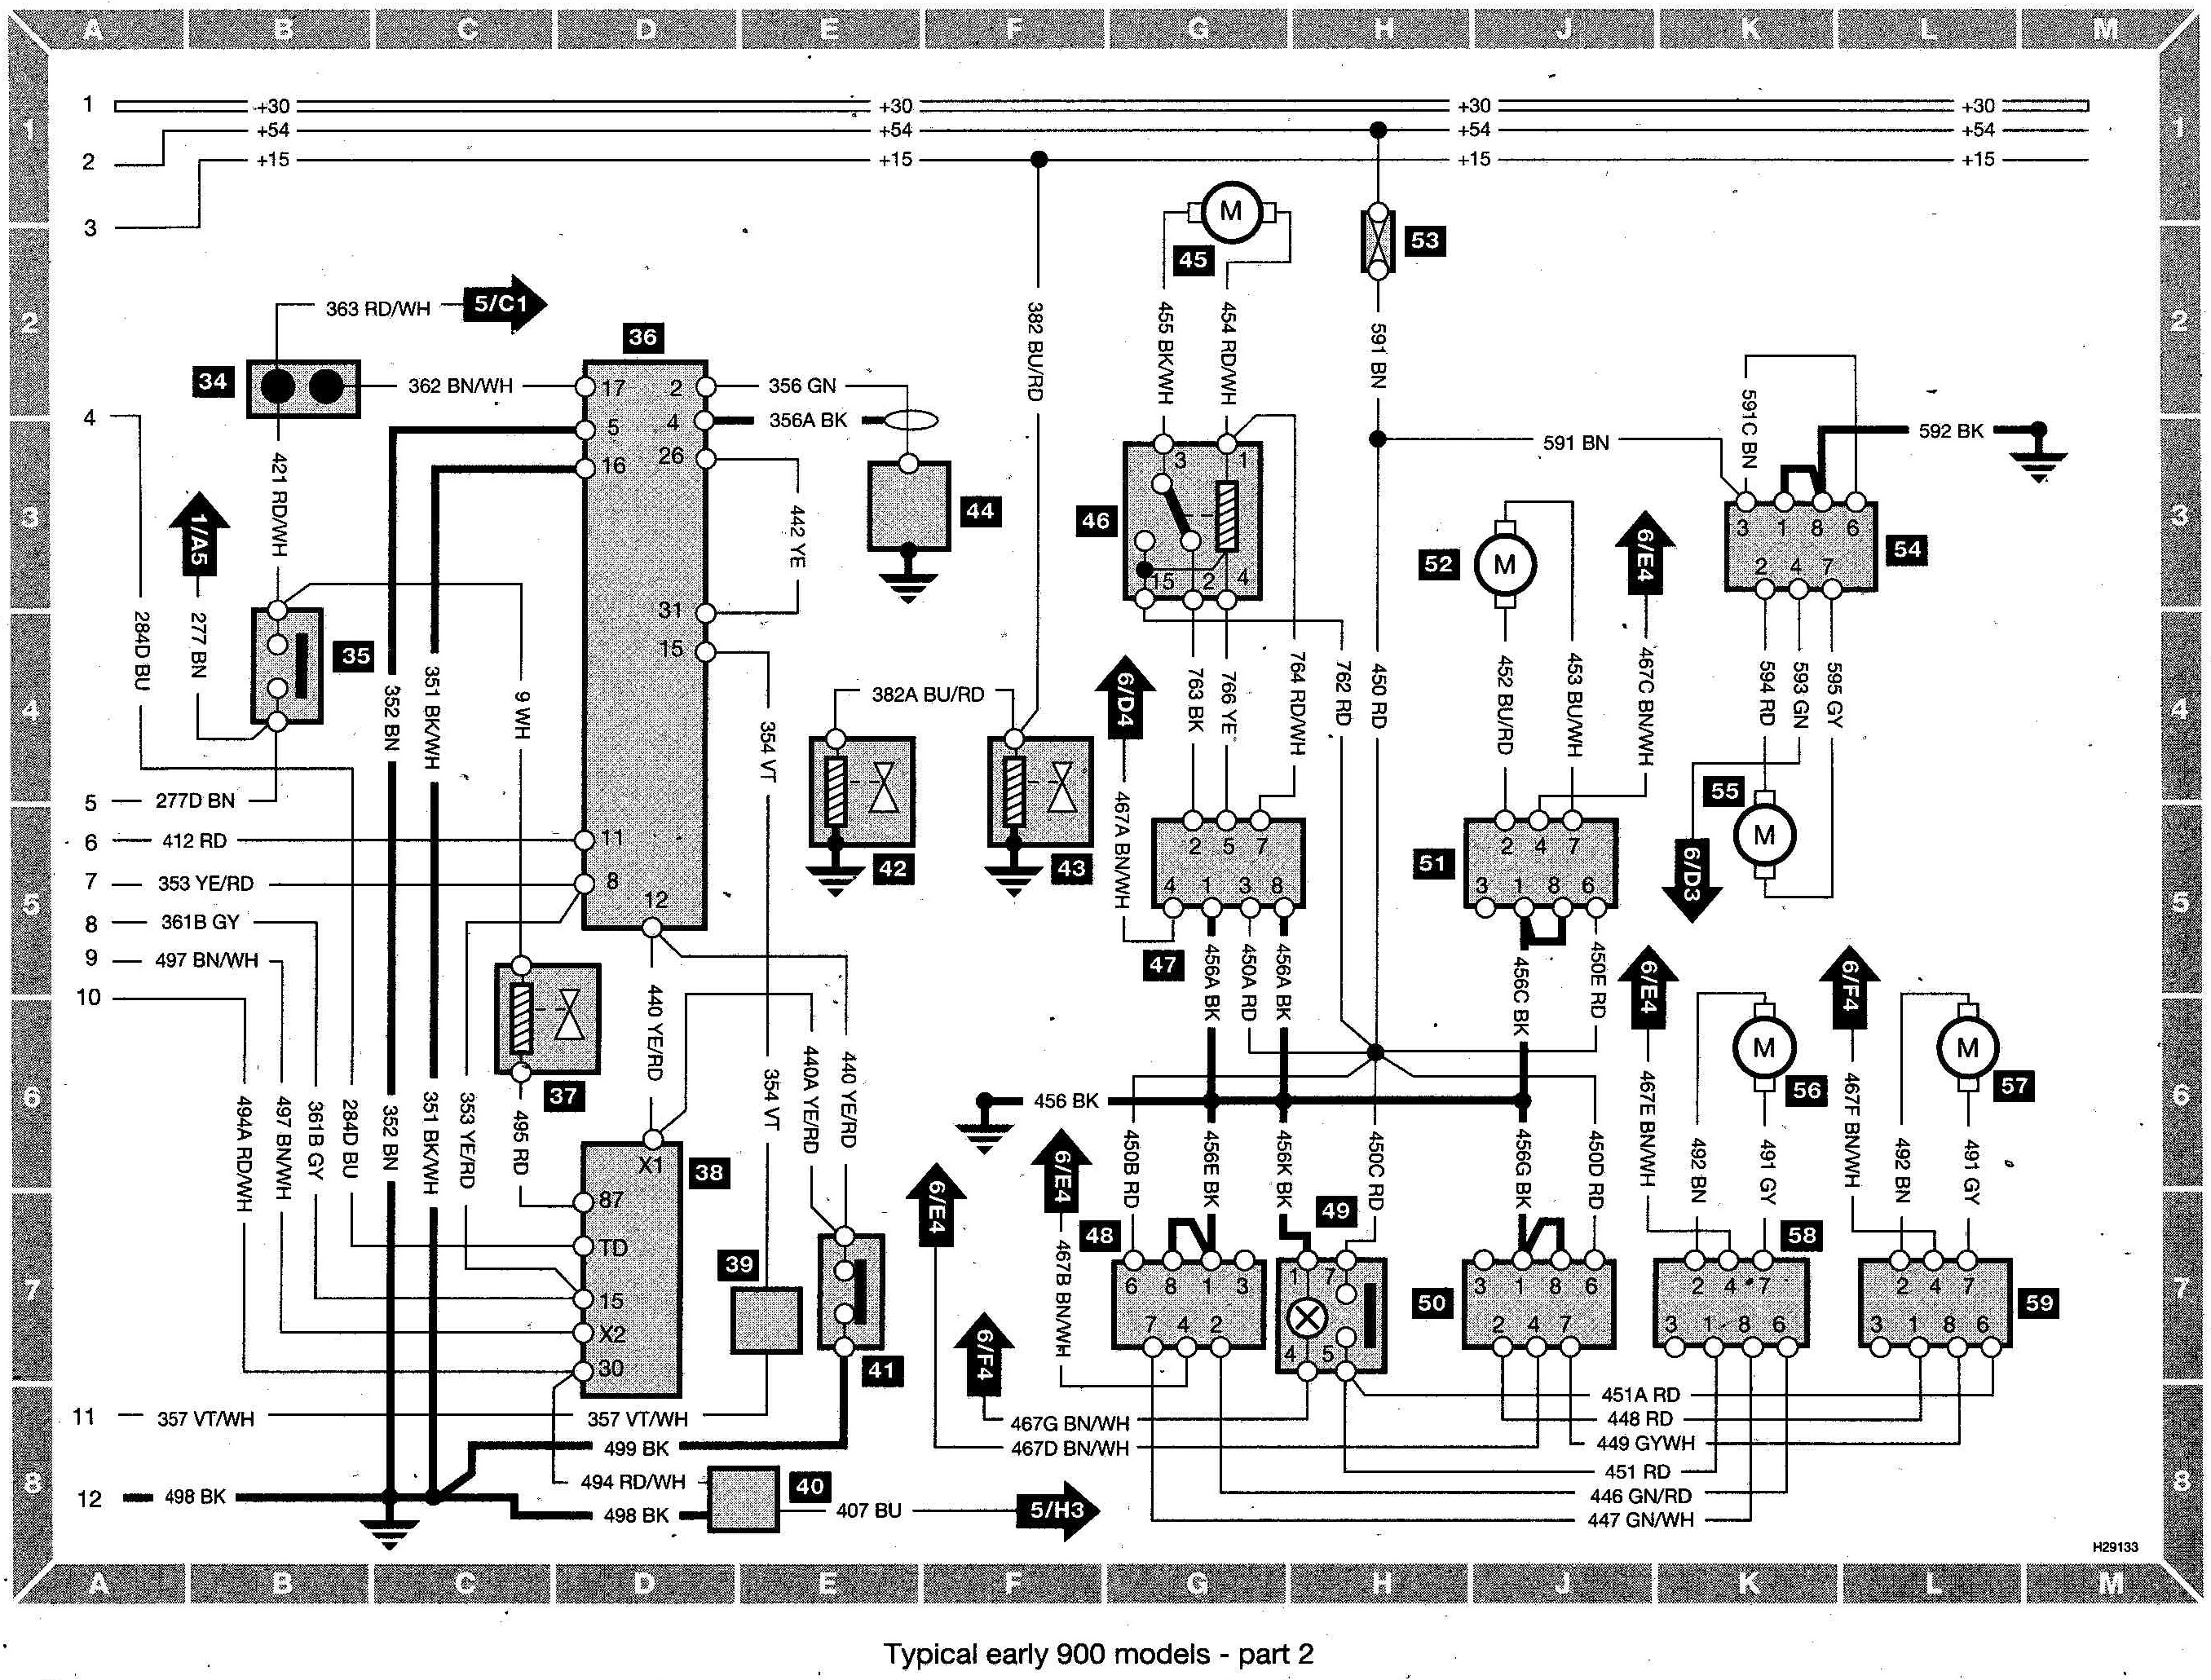 saab wiring diagram 9 3 saab image wiring diagram saab wiring diagram 9 5 saab image wiring diagram on saab wiring diagram 9